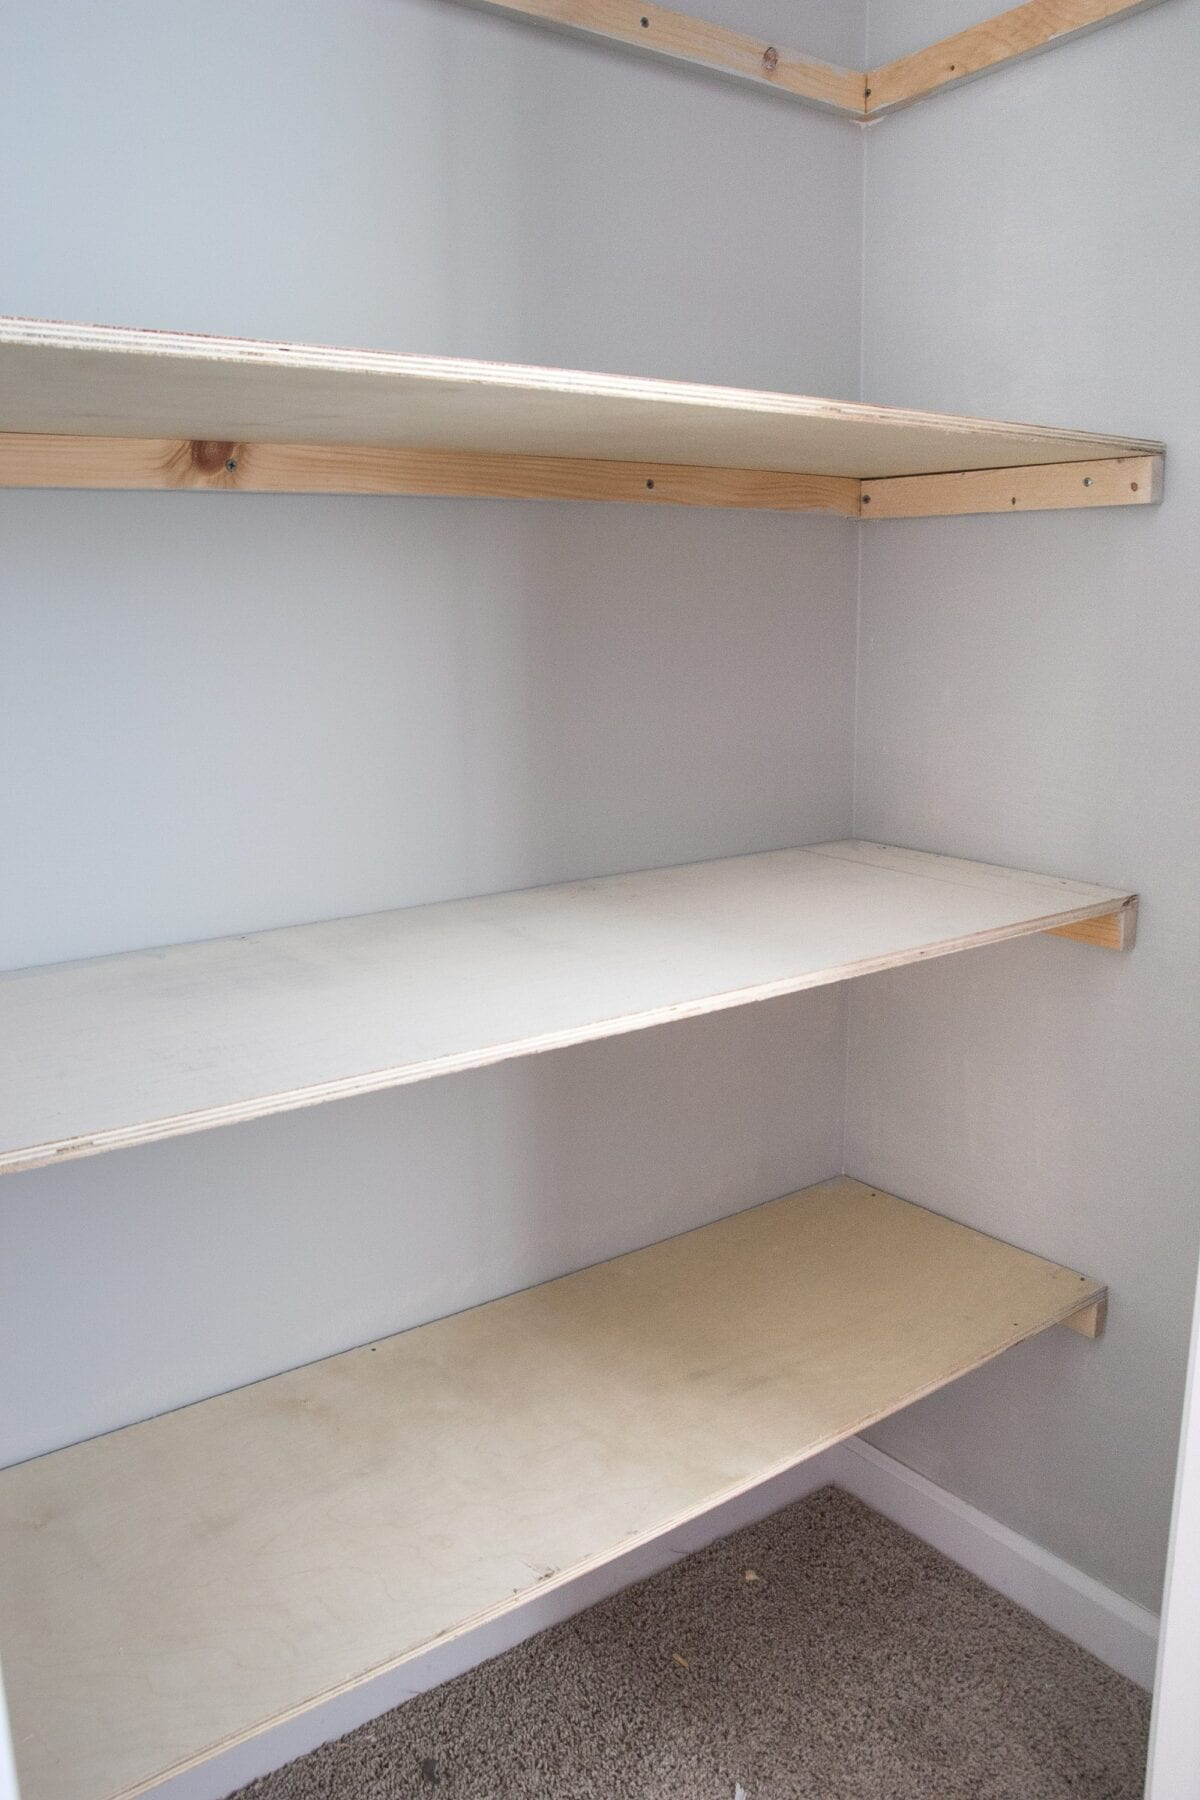 Most bedrooms in newly built homes have a dedicated area for a built-in robe included in one or all of the bedrooms. There are a number of ways to make use of this space, from a simple shelf and single hanging rod to stacked shelves, drawers, trouser rack pull-outs, shoe racks and more.